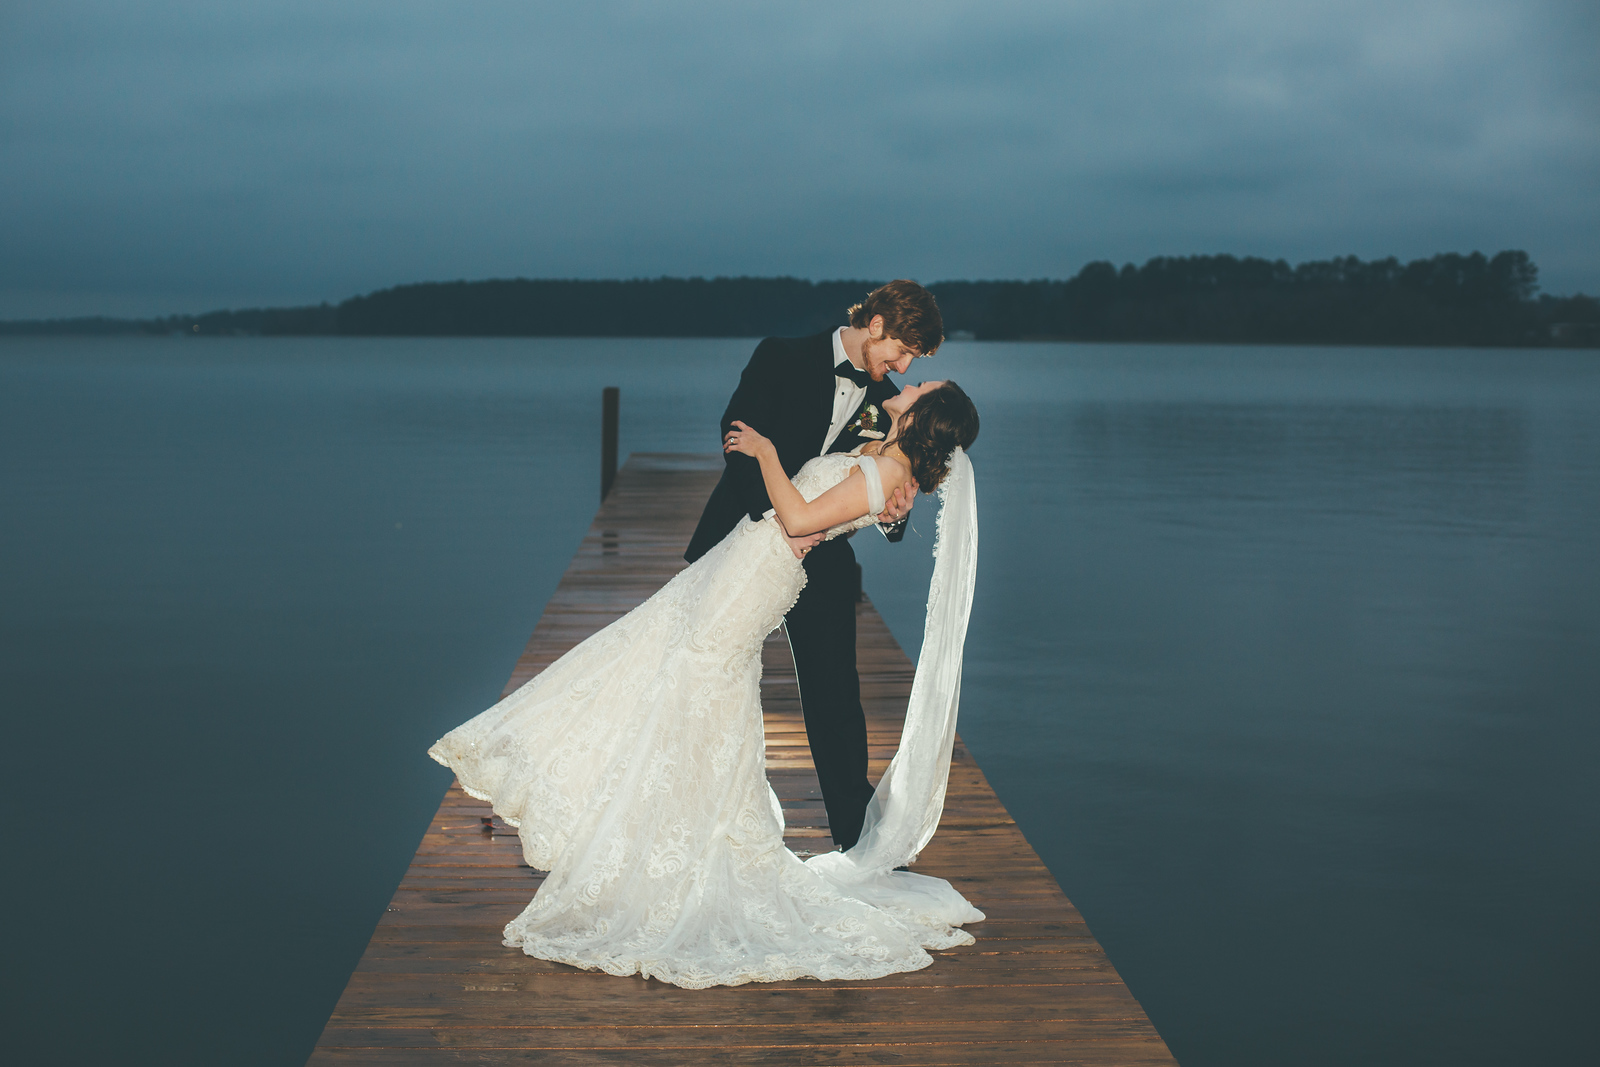 A groom dipping his bride on a dock in a lake at nightfall